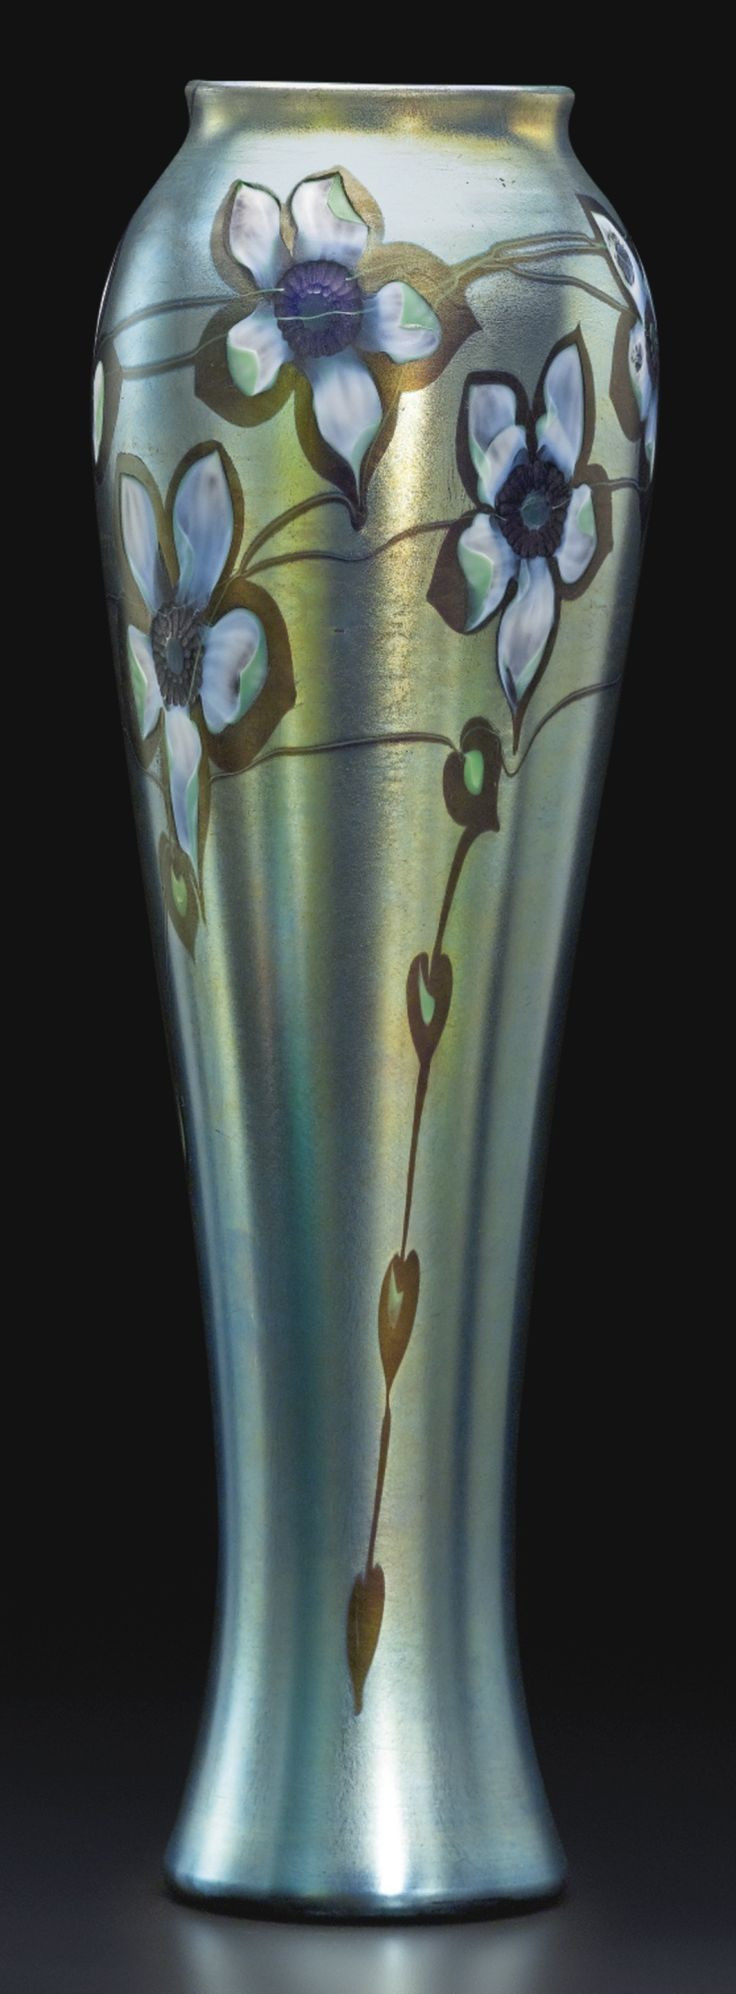 Tiffany Tulip Vase Of 280 Best Art Glass Images On Pinterest Art Nouveau Glass Vase and within Tall Blue Green Iridescent Vase with Flower Design by Tiffany Studios